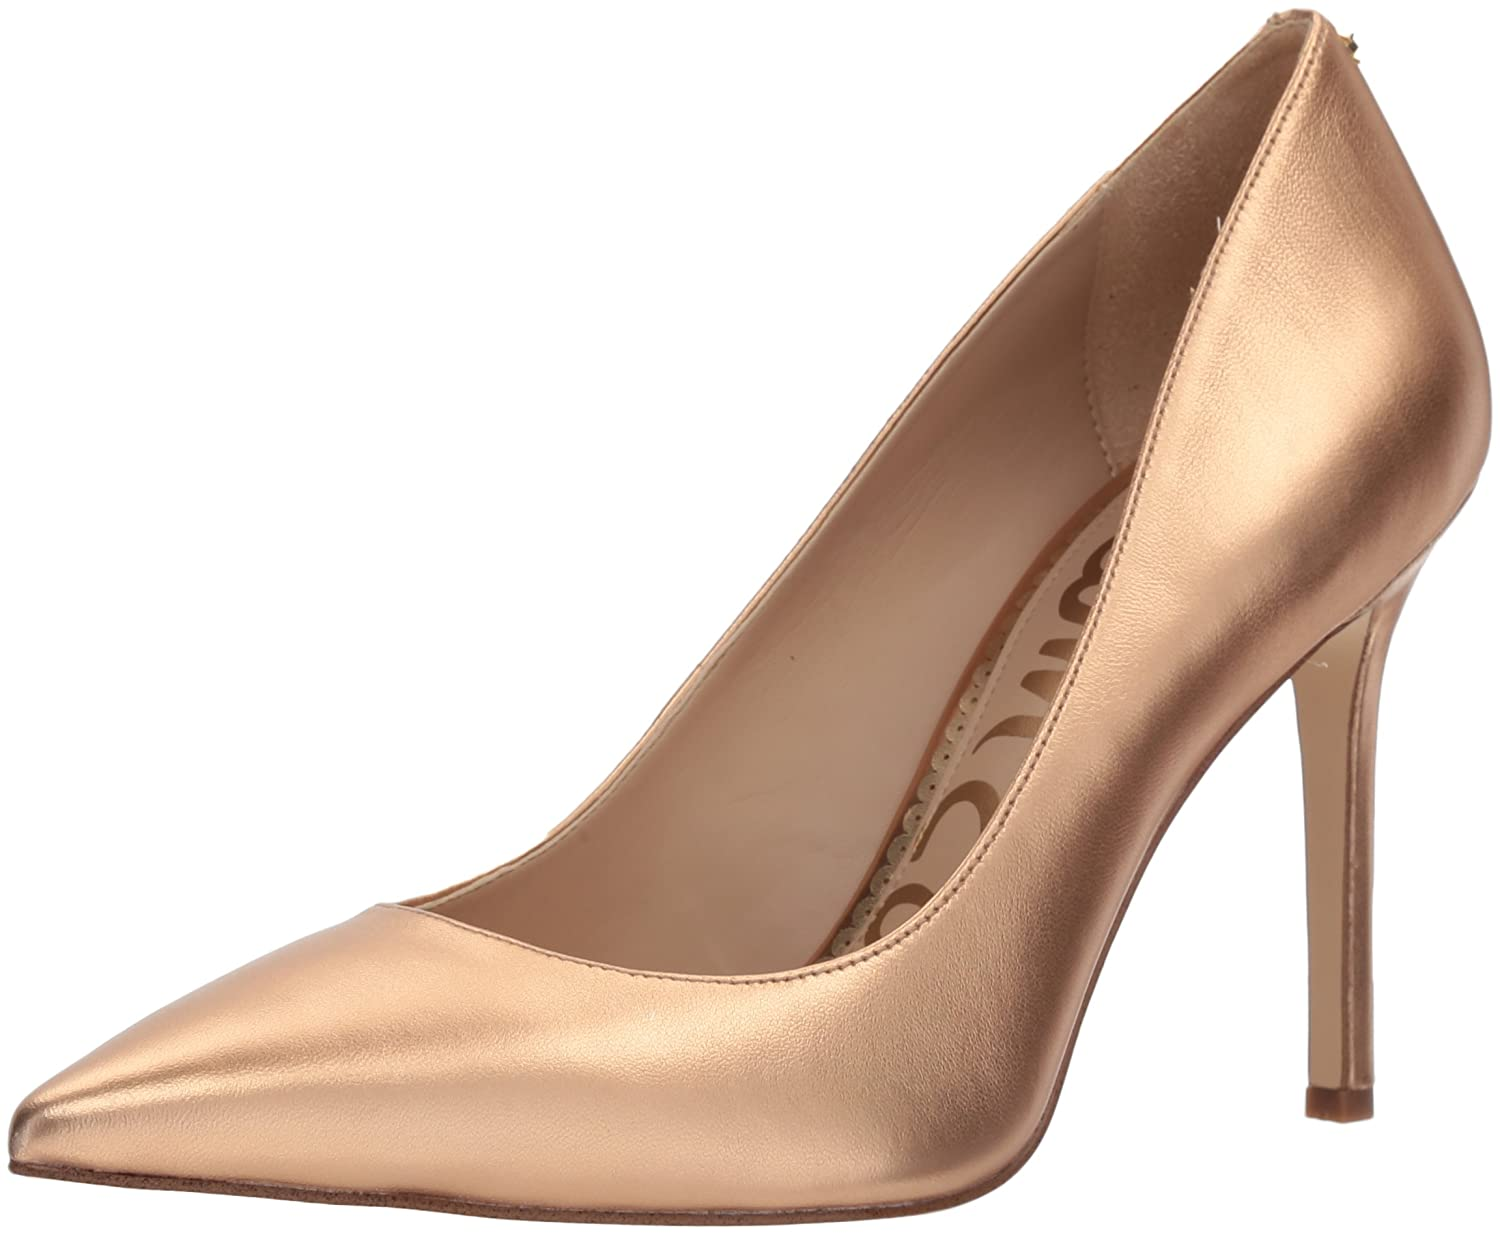 Sam Edelman Women's Hazel Pump B076NXT9JV 10.5 B(M) US|Golden Copper Metallic Leather